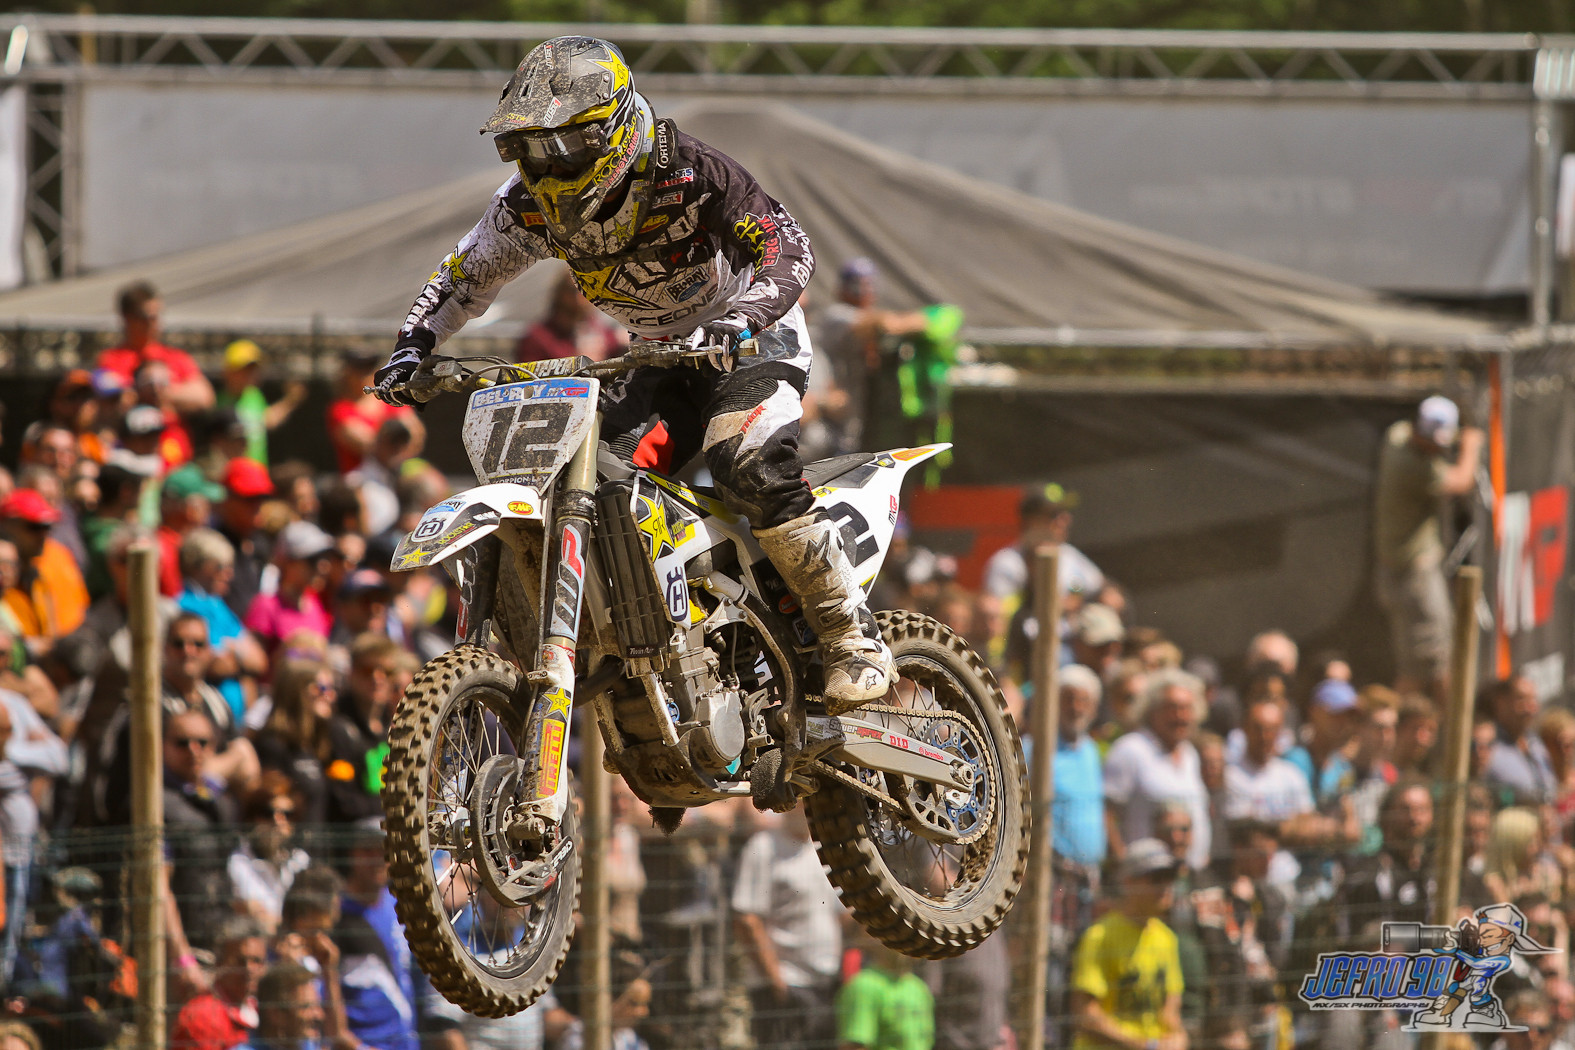 Max Nagl - Photo Gallery: MXGP of Trentino, Italy - Motocross Pictures - Vital MX